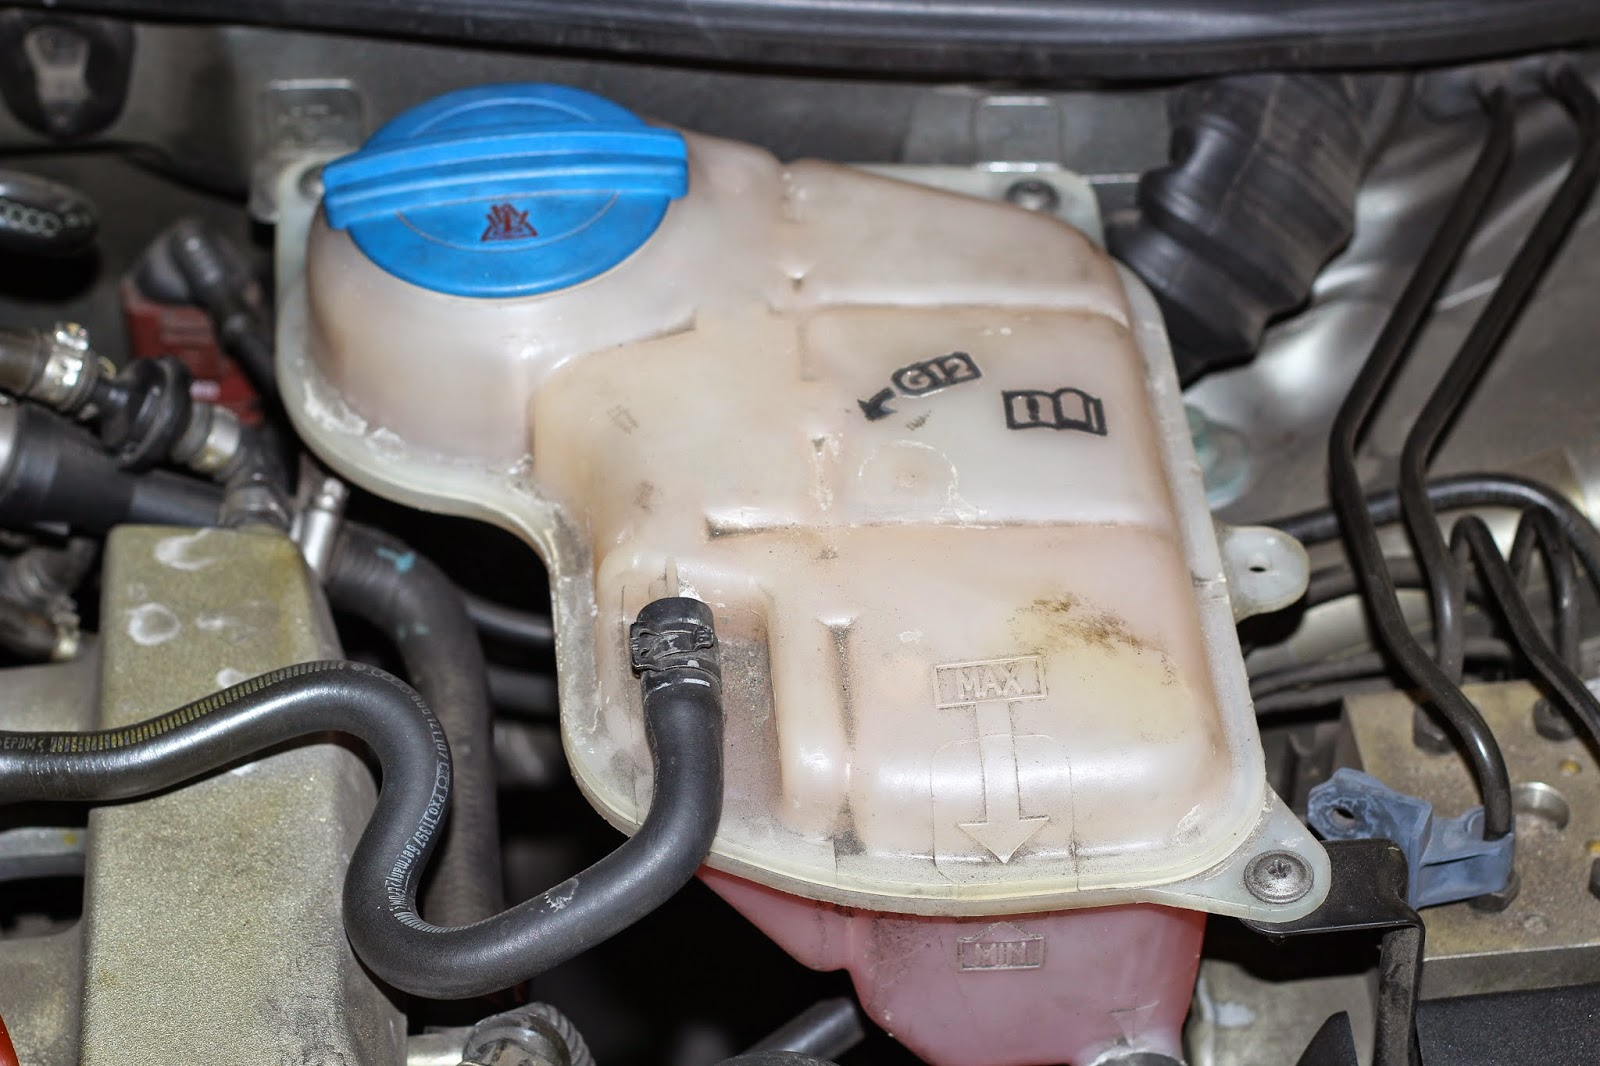 small resolution of remove three screws of the coolant tank lift it away remove the coolant sensor connector at the bottom of the tank gently lift it aside out of the way